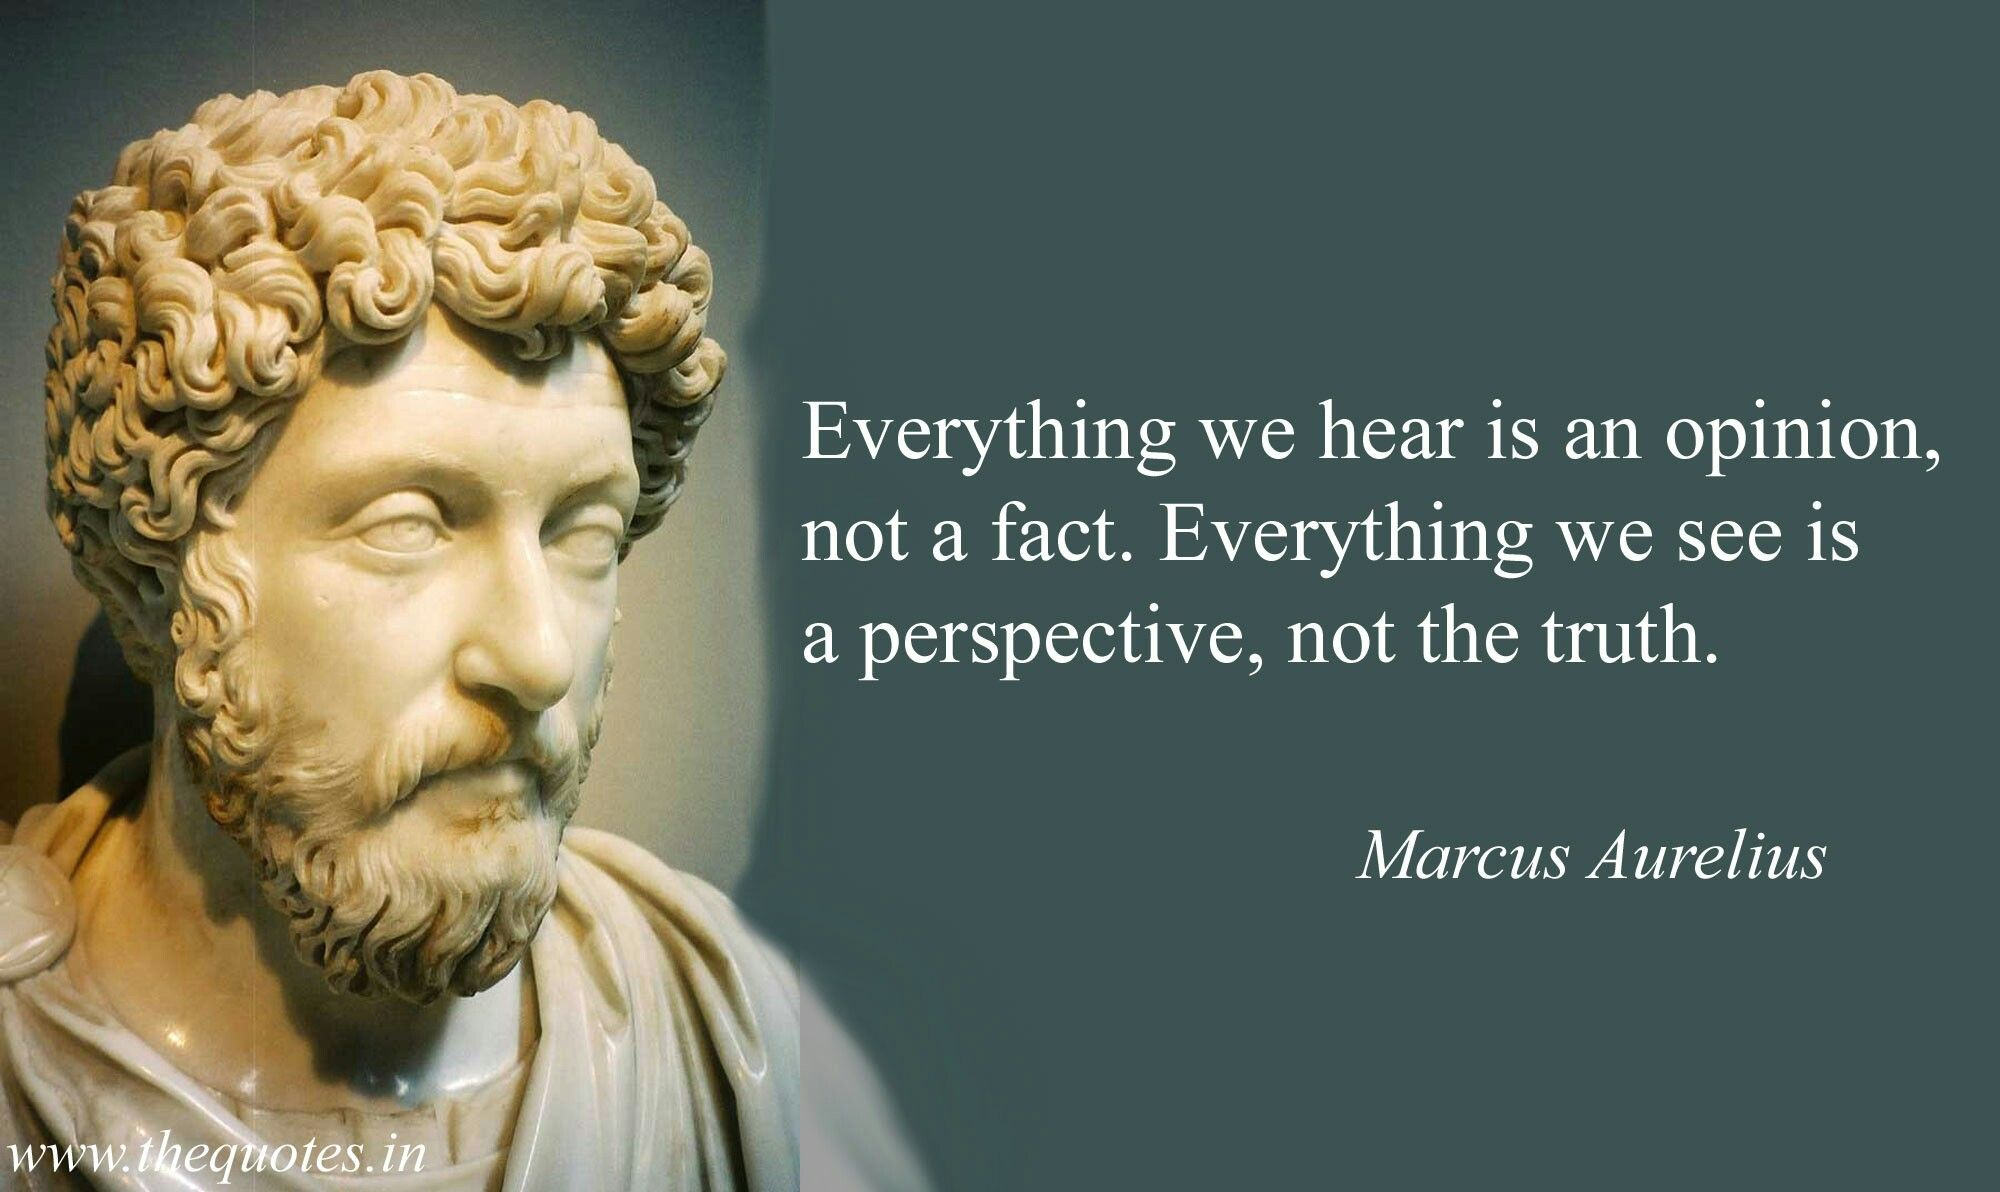 Marcus Aurelius Quotes Impressive Marcus Aurelius  Sayings And Quotes  Pinterest  Quotation